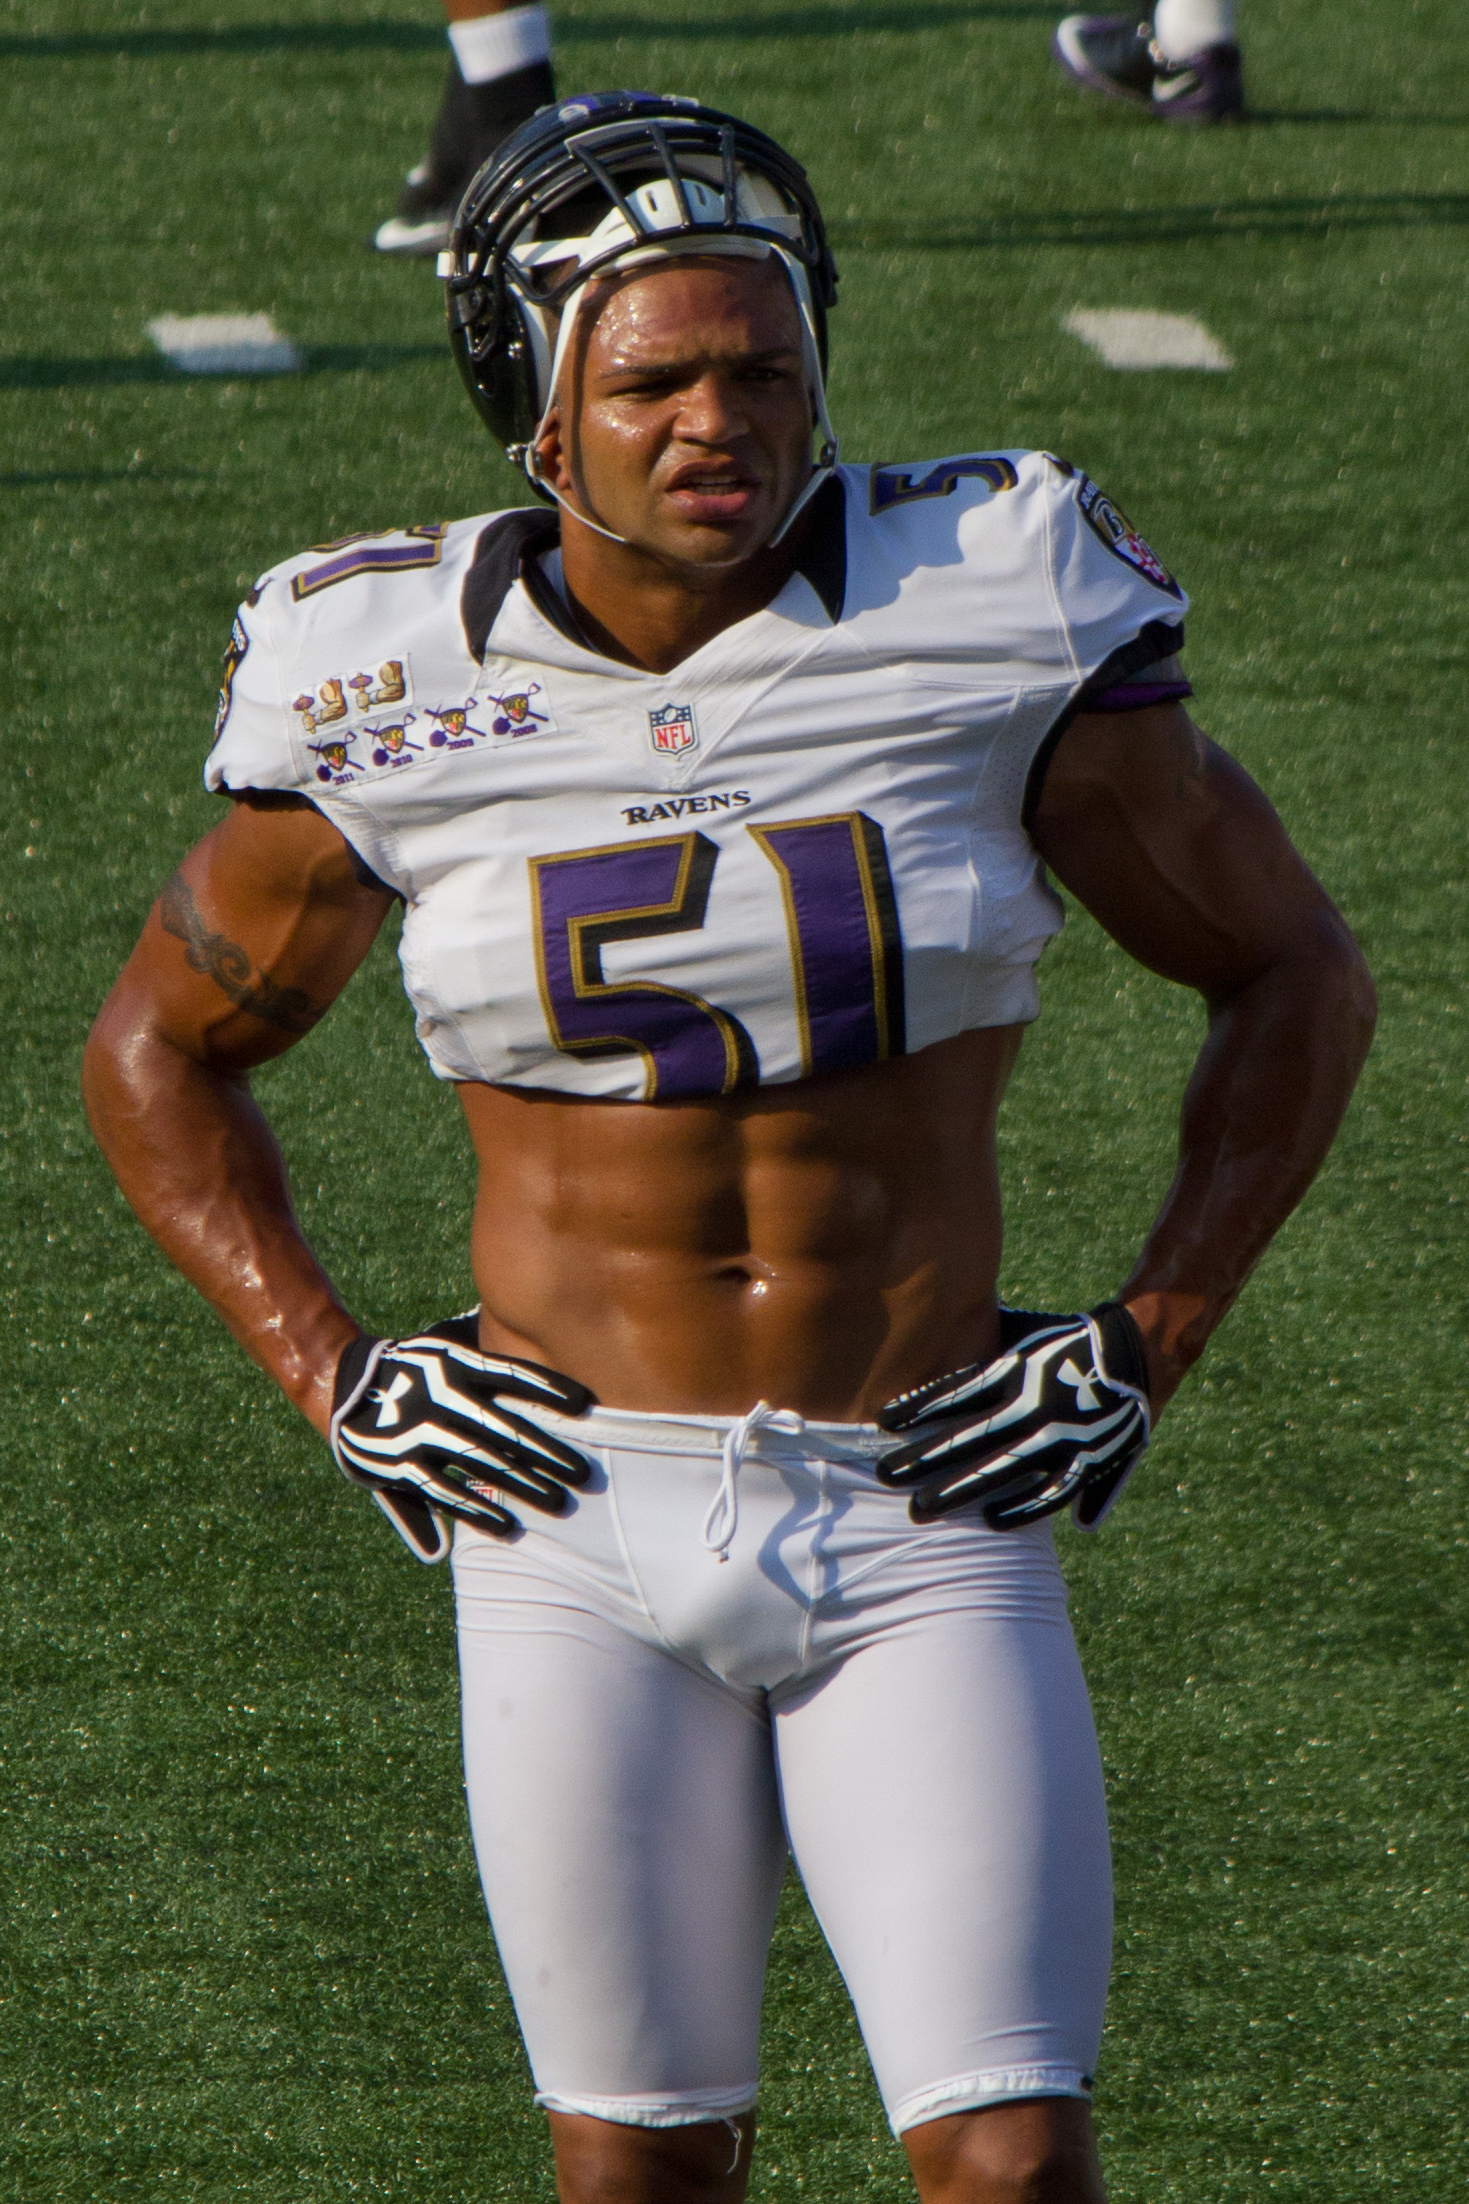 52 brendon ayanbadejo (ravens) - fittest bodies in sports